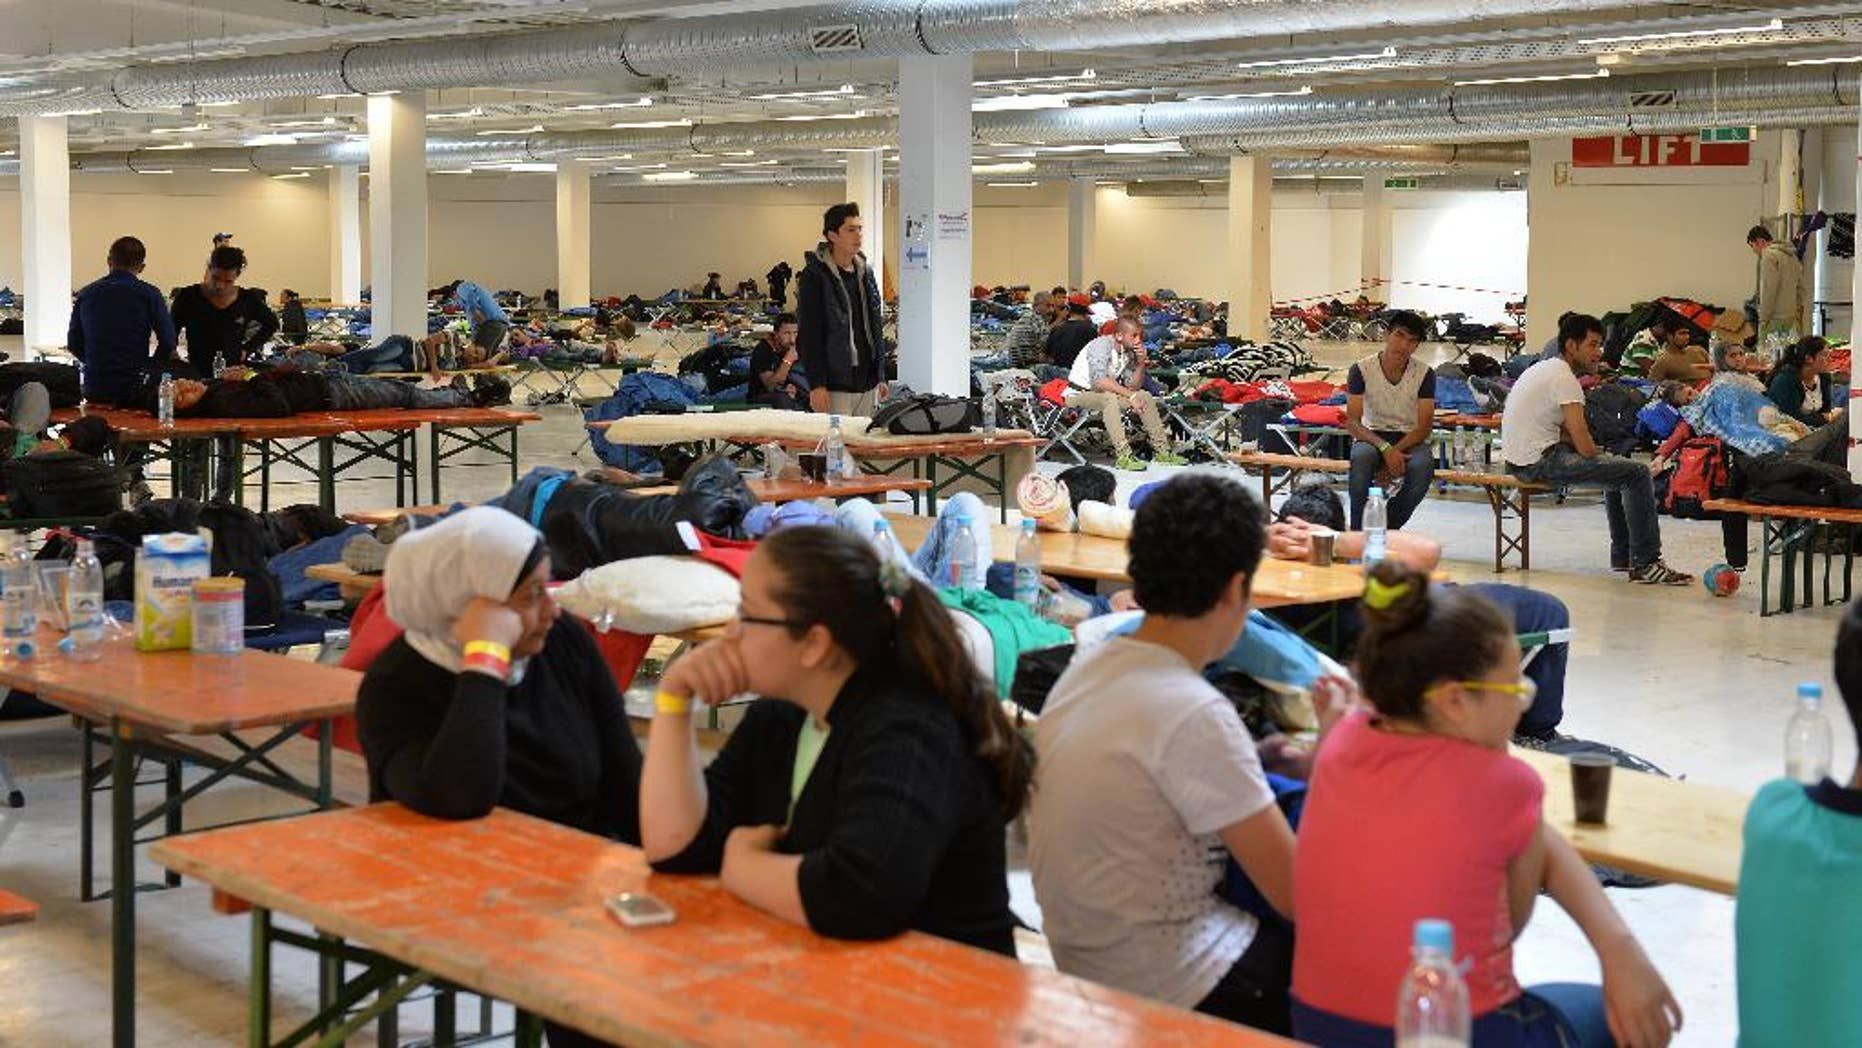 Refugees rest in a former furniture factory after crossing the border from Austria in Freilassing, southern Germany, Thursday, Sept. 17, 2015. (AP Photo/Kerstin Joensson)